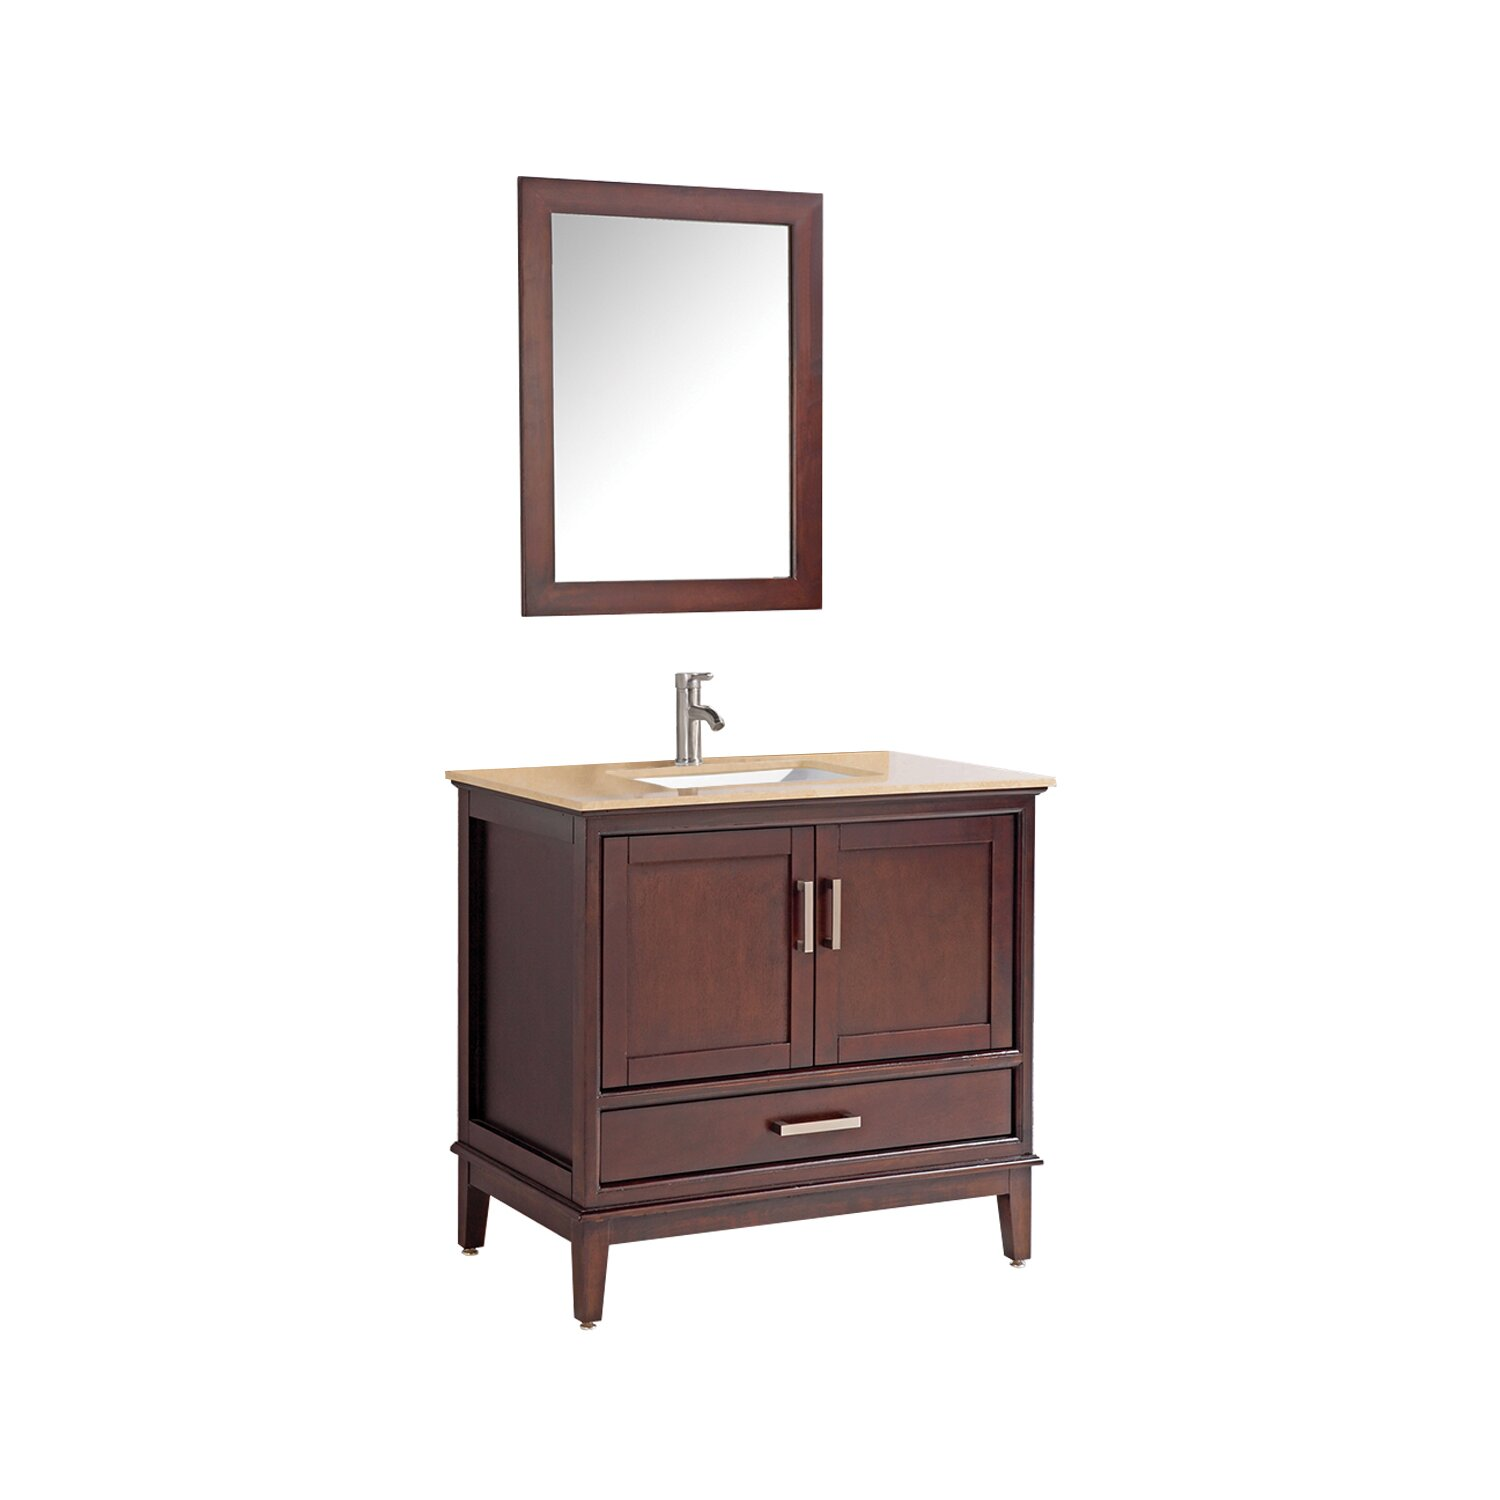 "MTDVanities Sierra 24"" Single Bathroom Vanity Set with ..."